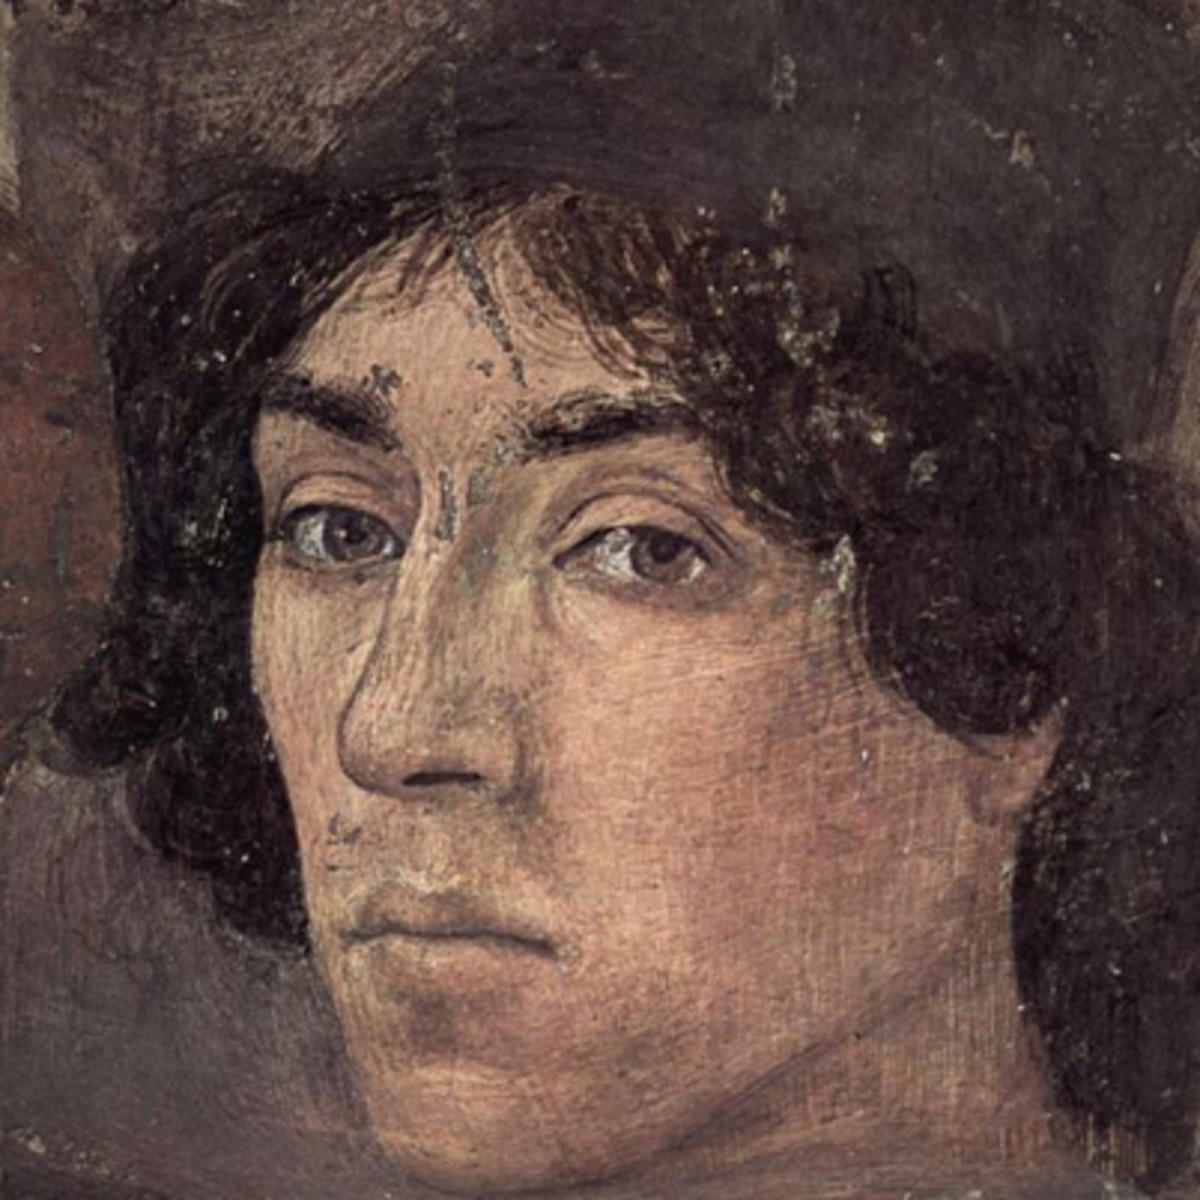 a biography of masaccio a painter It has been said that masaccio introduced into painting the plastic boldness of donatello, and carried out the linear perspective of paolo uccello and brunelleschi.